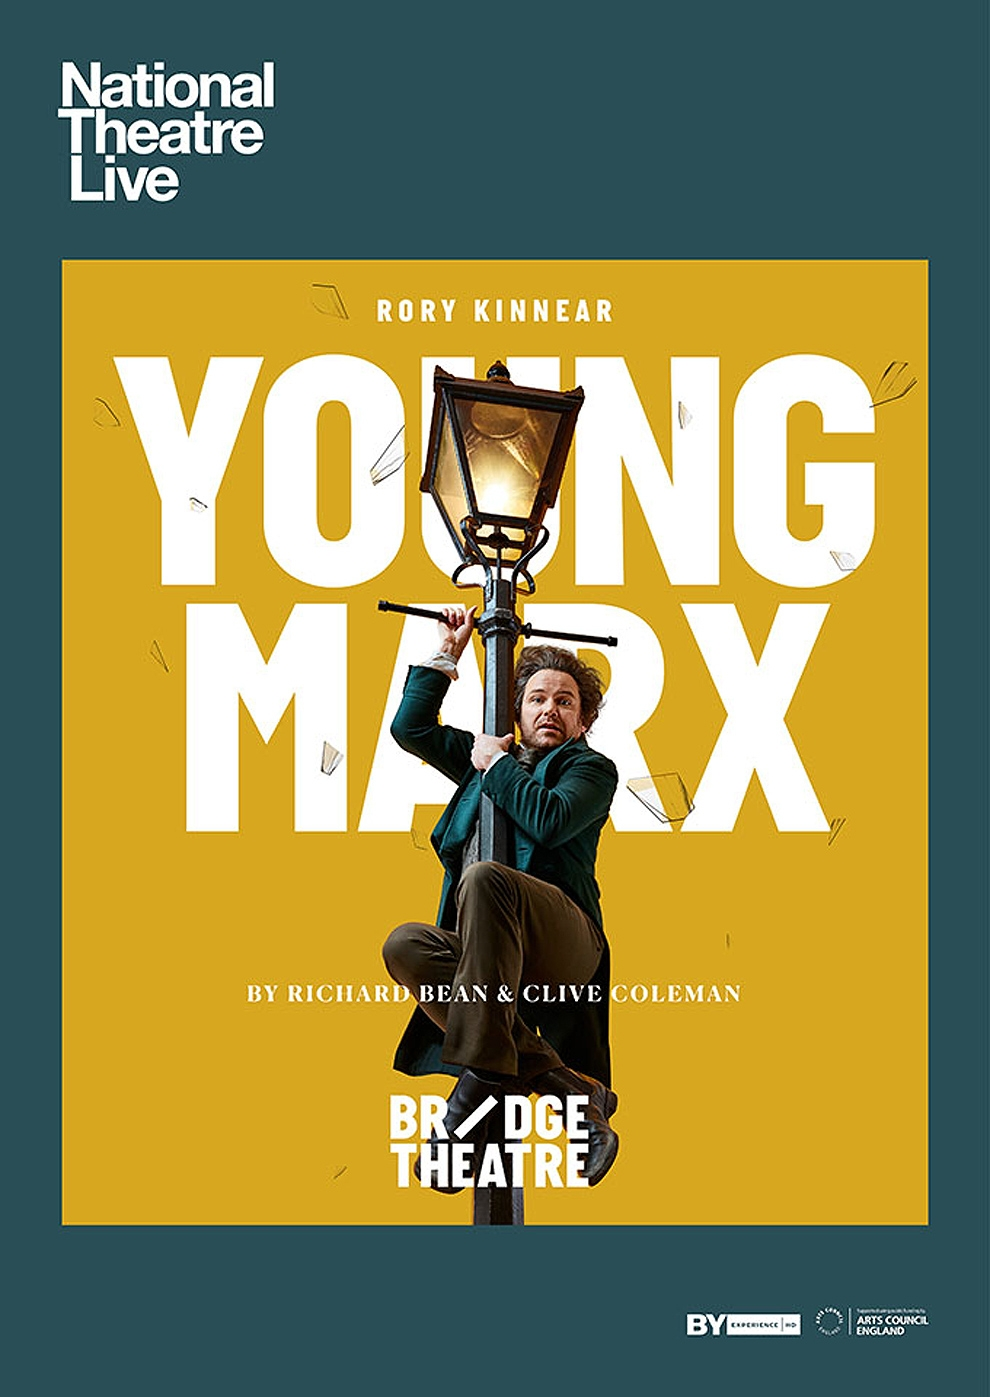 National Theatre London: Young Marx (Poster)